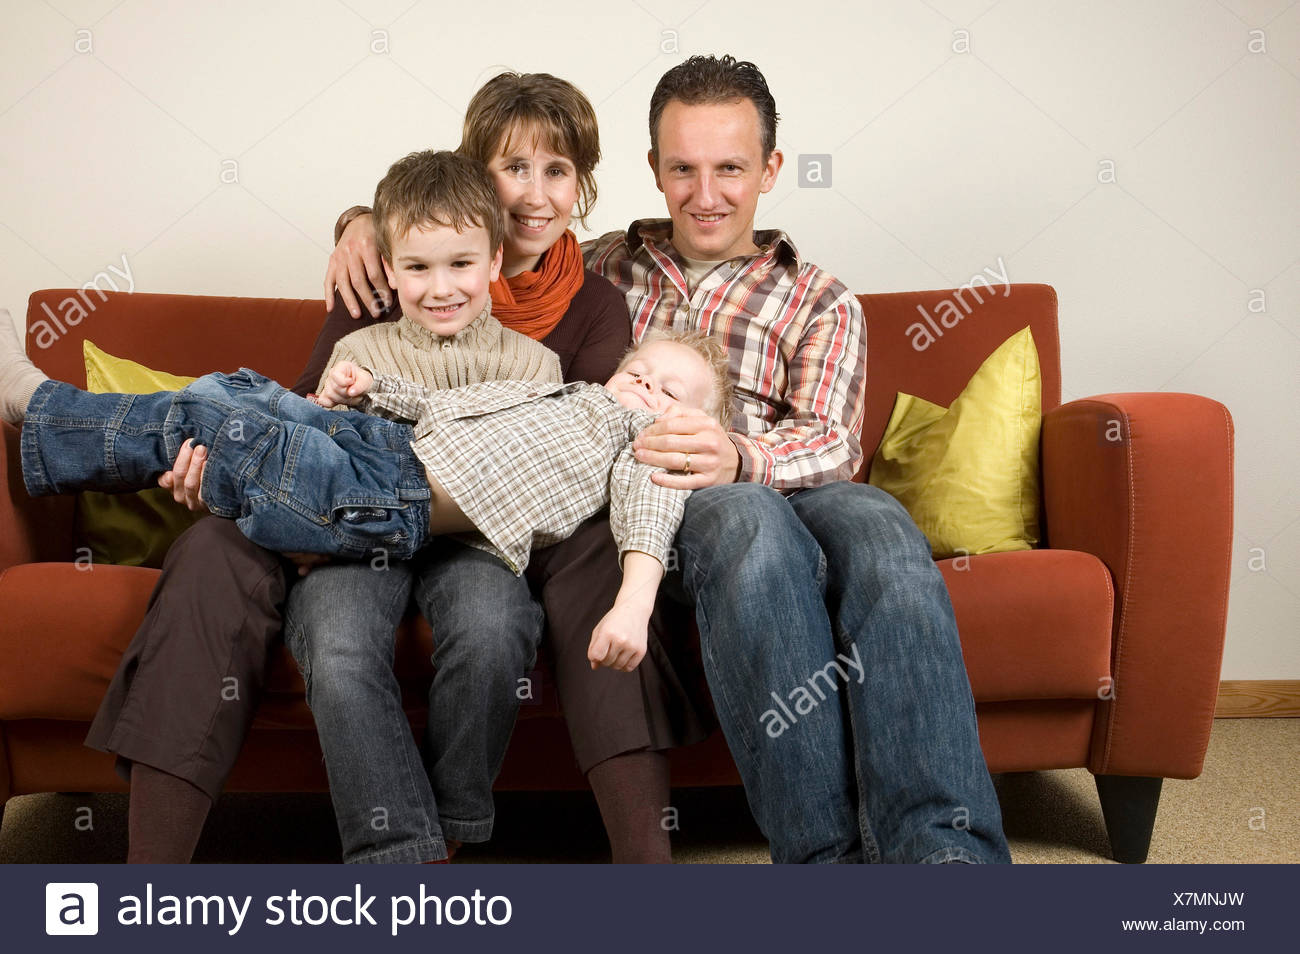 Family On A Couch 5 - Stock Image